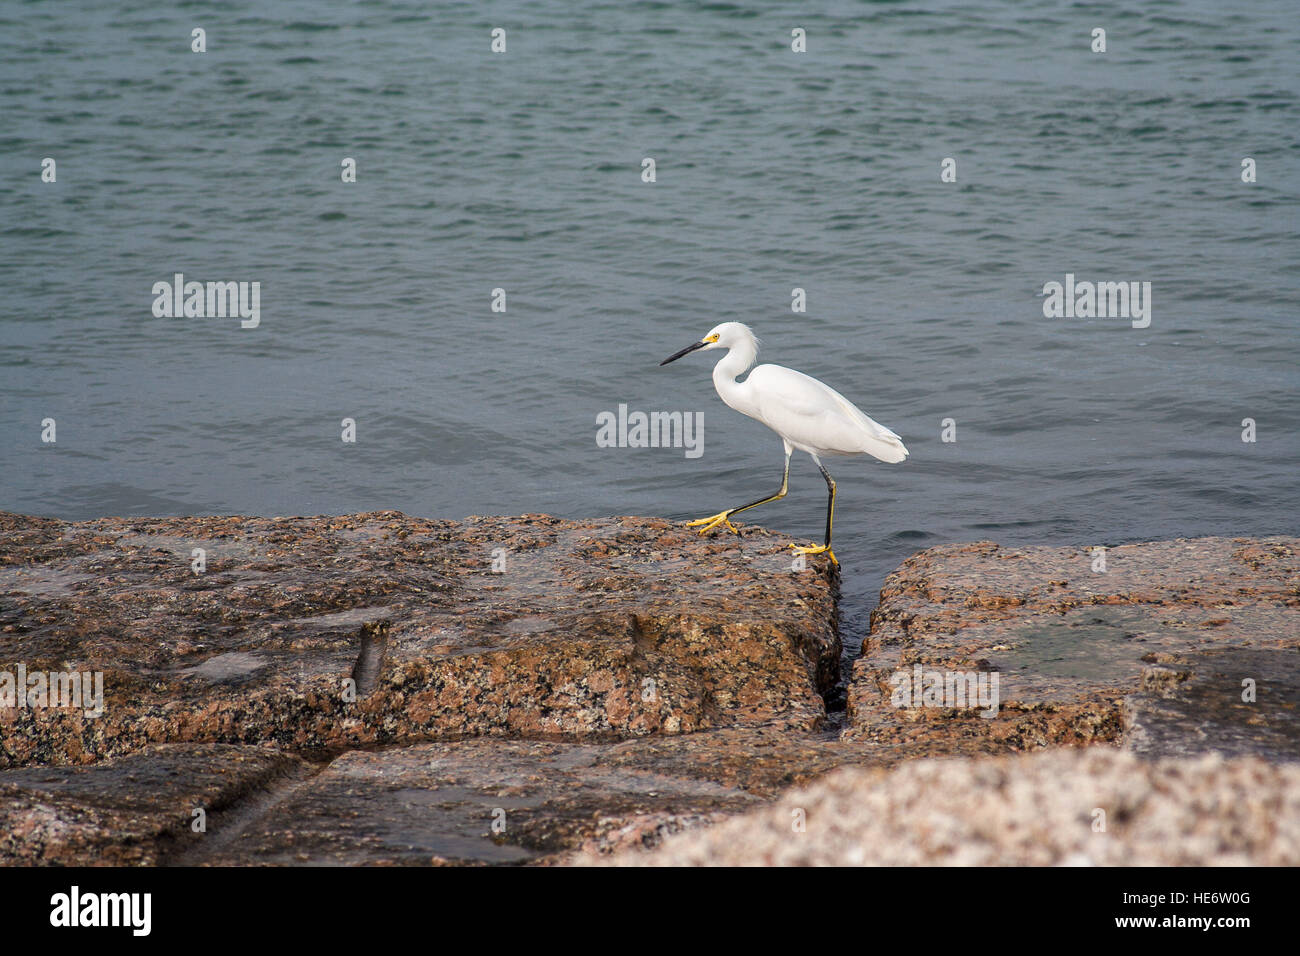 A snowy egret walks along the rocks by the sea - Stock Image